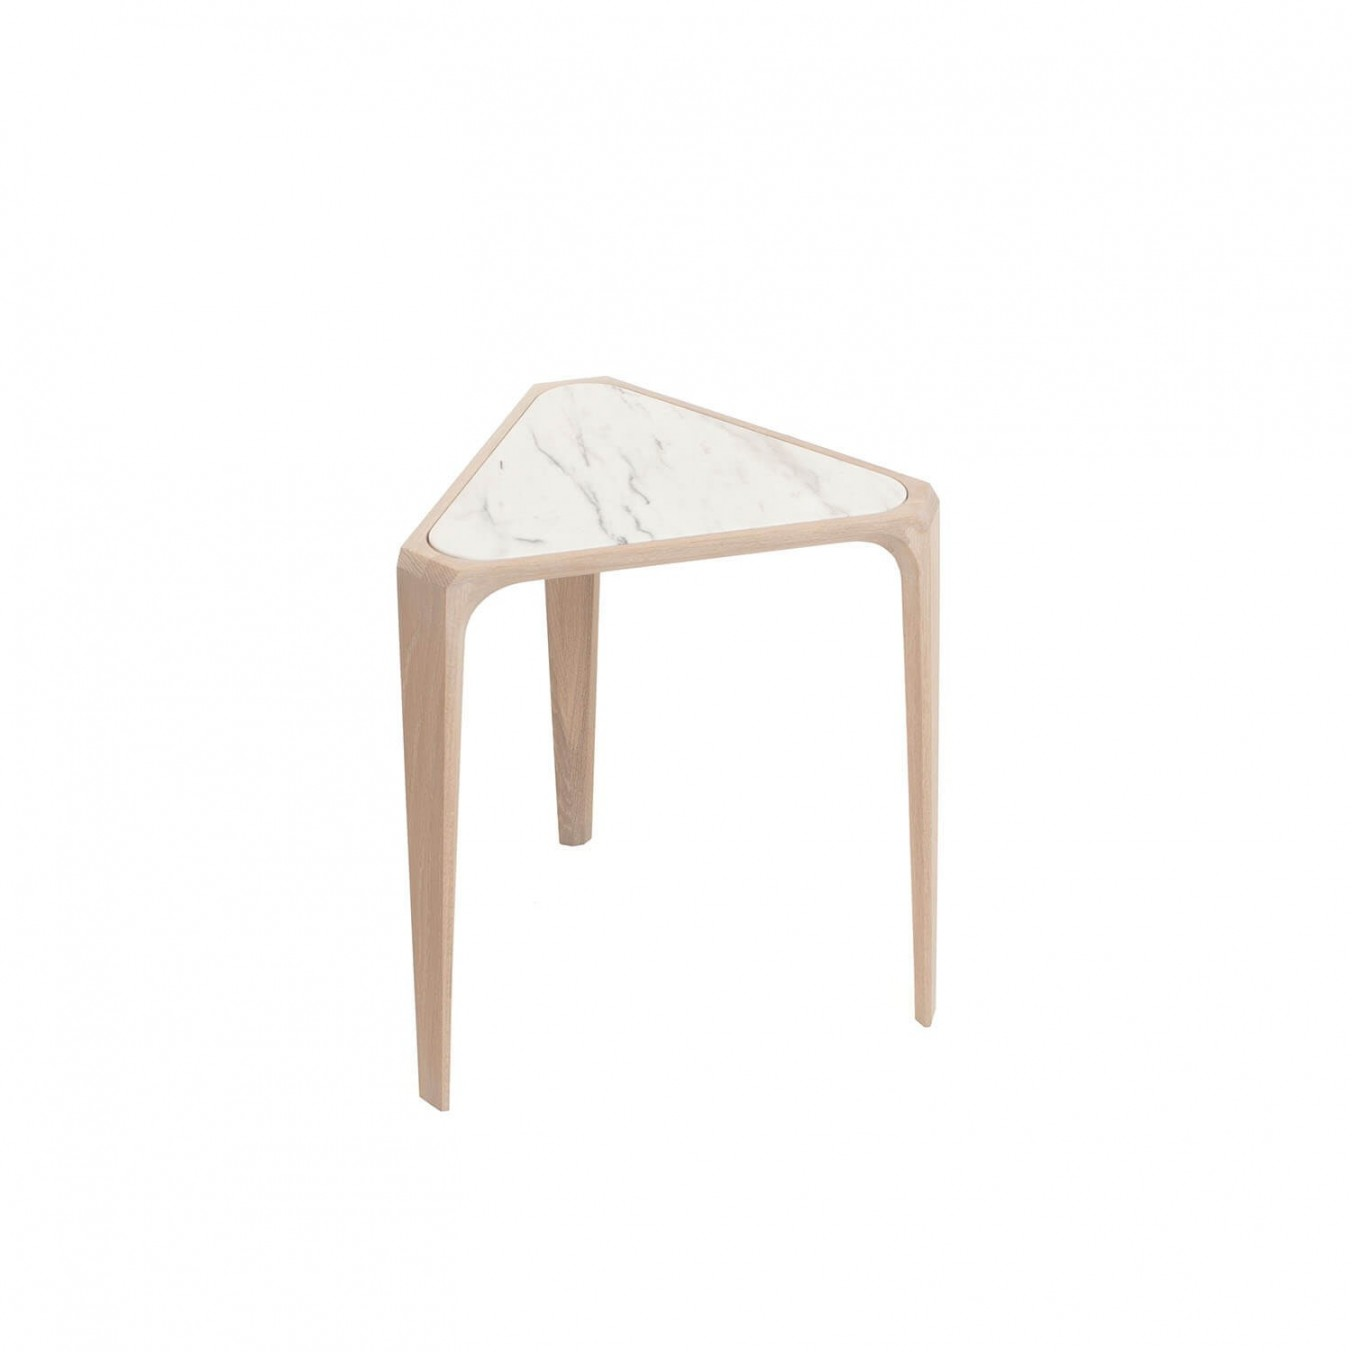 MARY'S SIDE TABLE